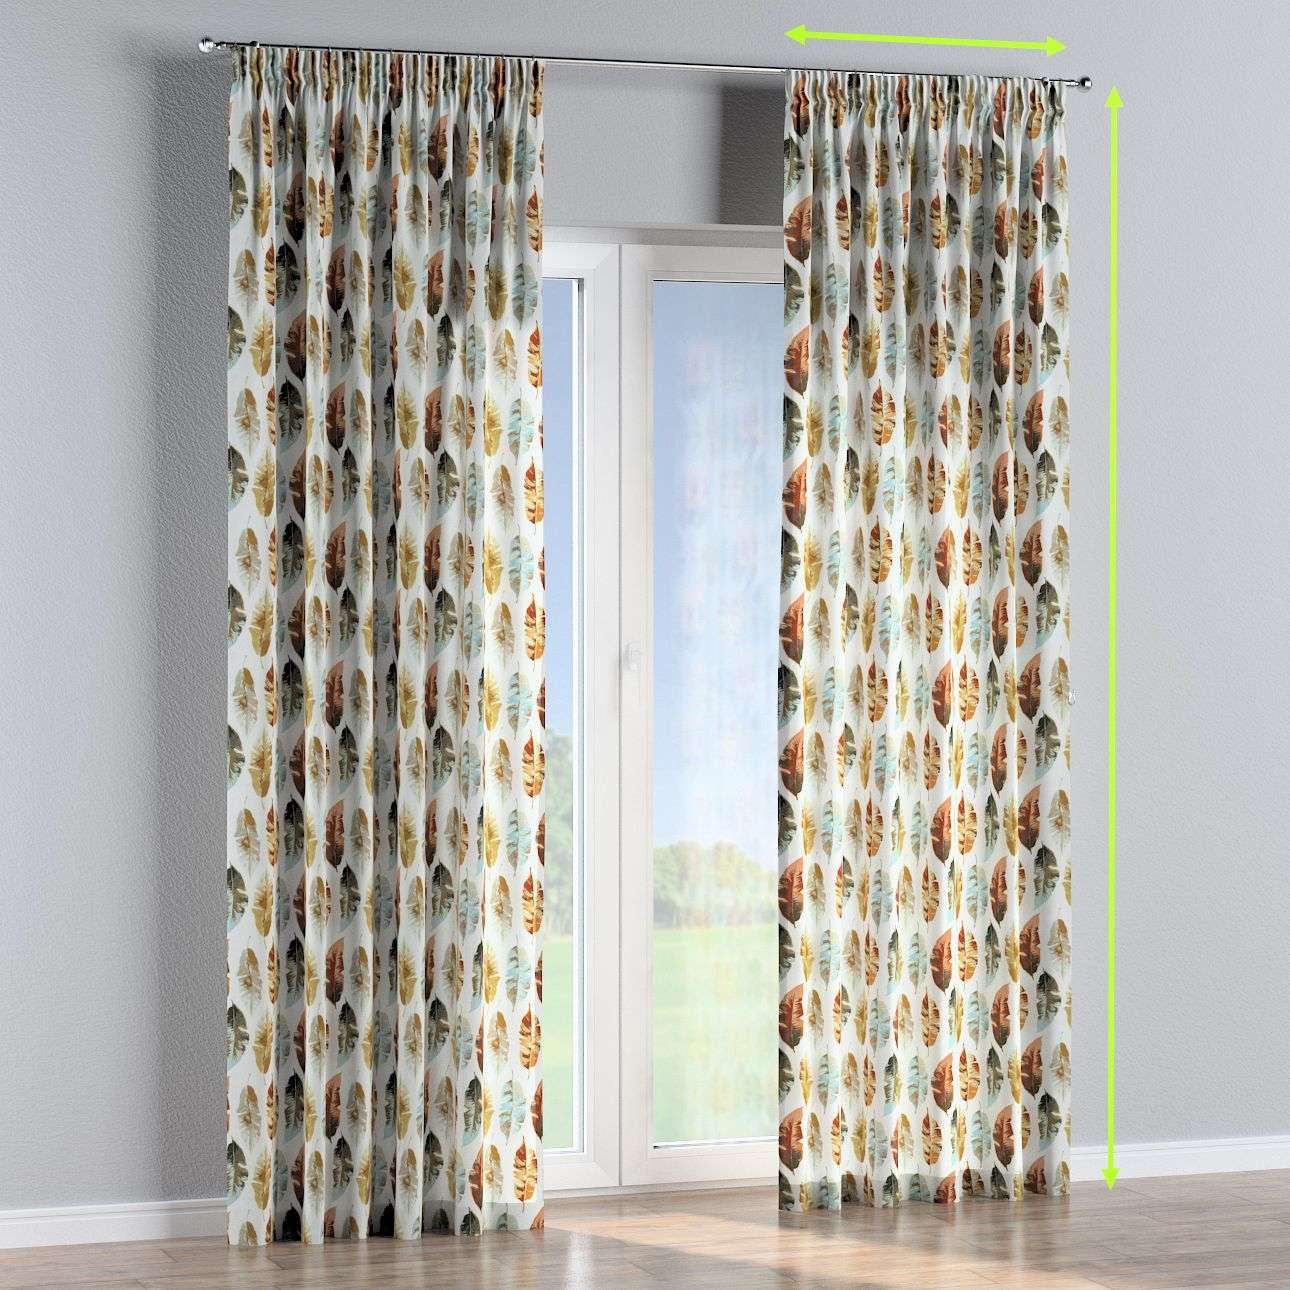 Pencil pleat curtains in collection Urban Jungle, fabric: 141-43